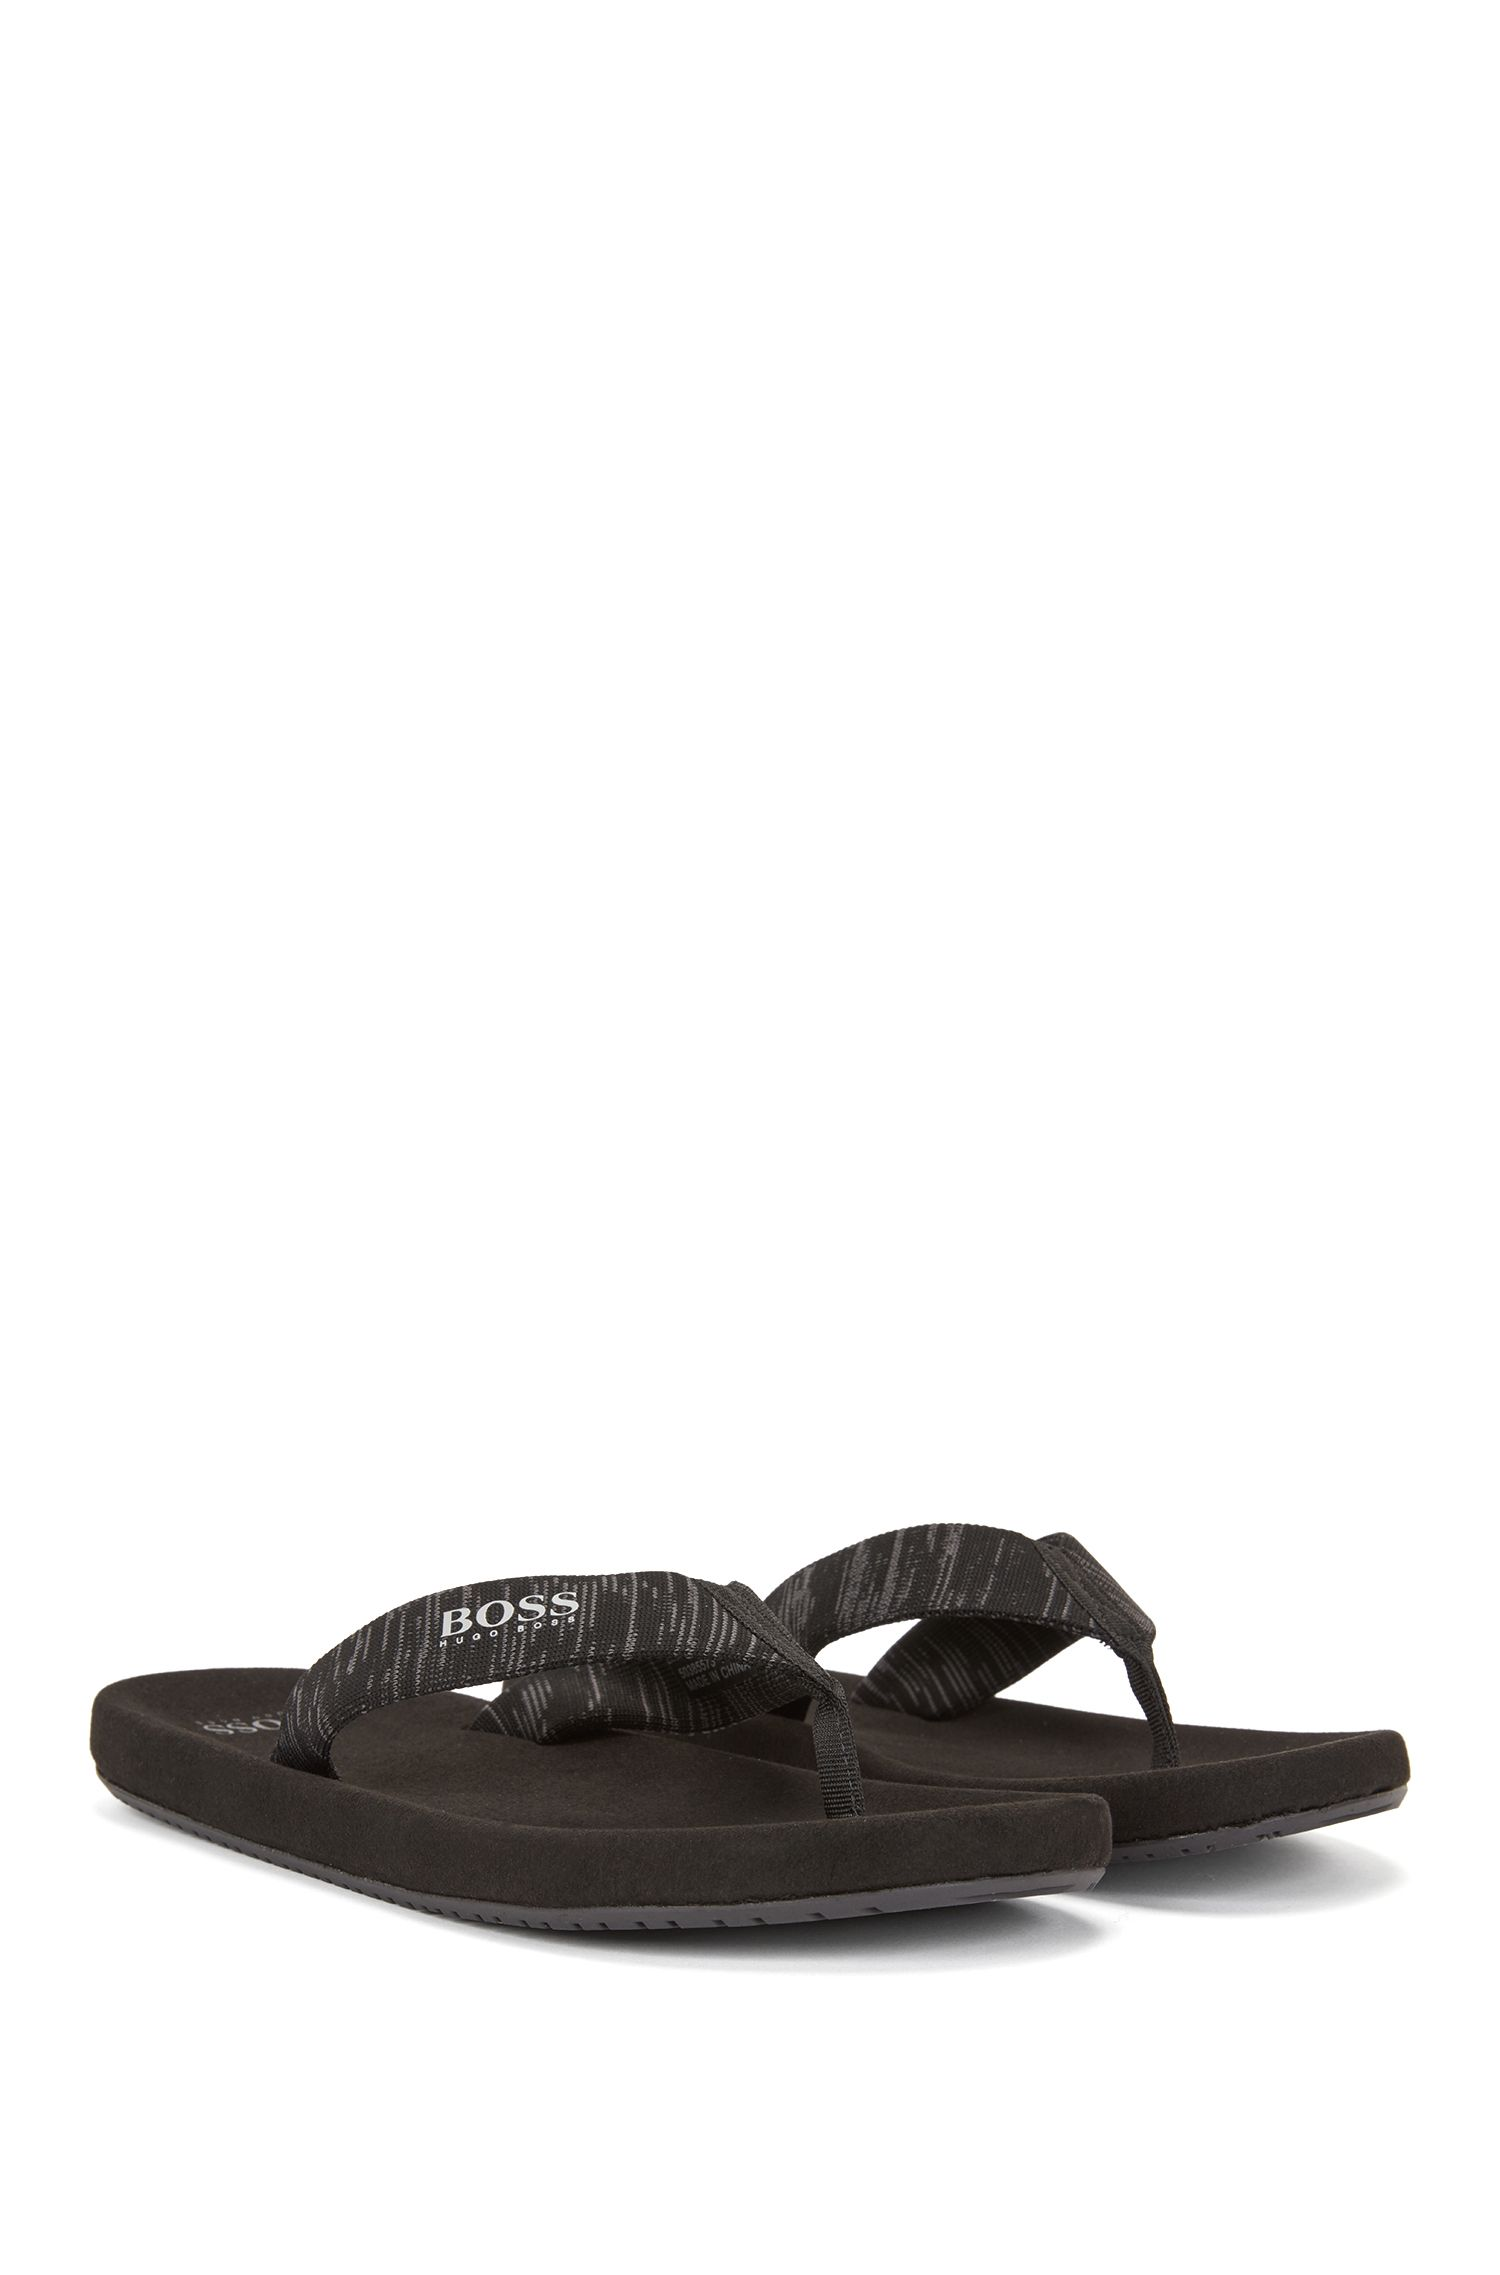 Toe-post flip-flops with knitted jacquard straps BOSS